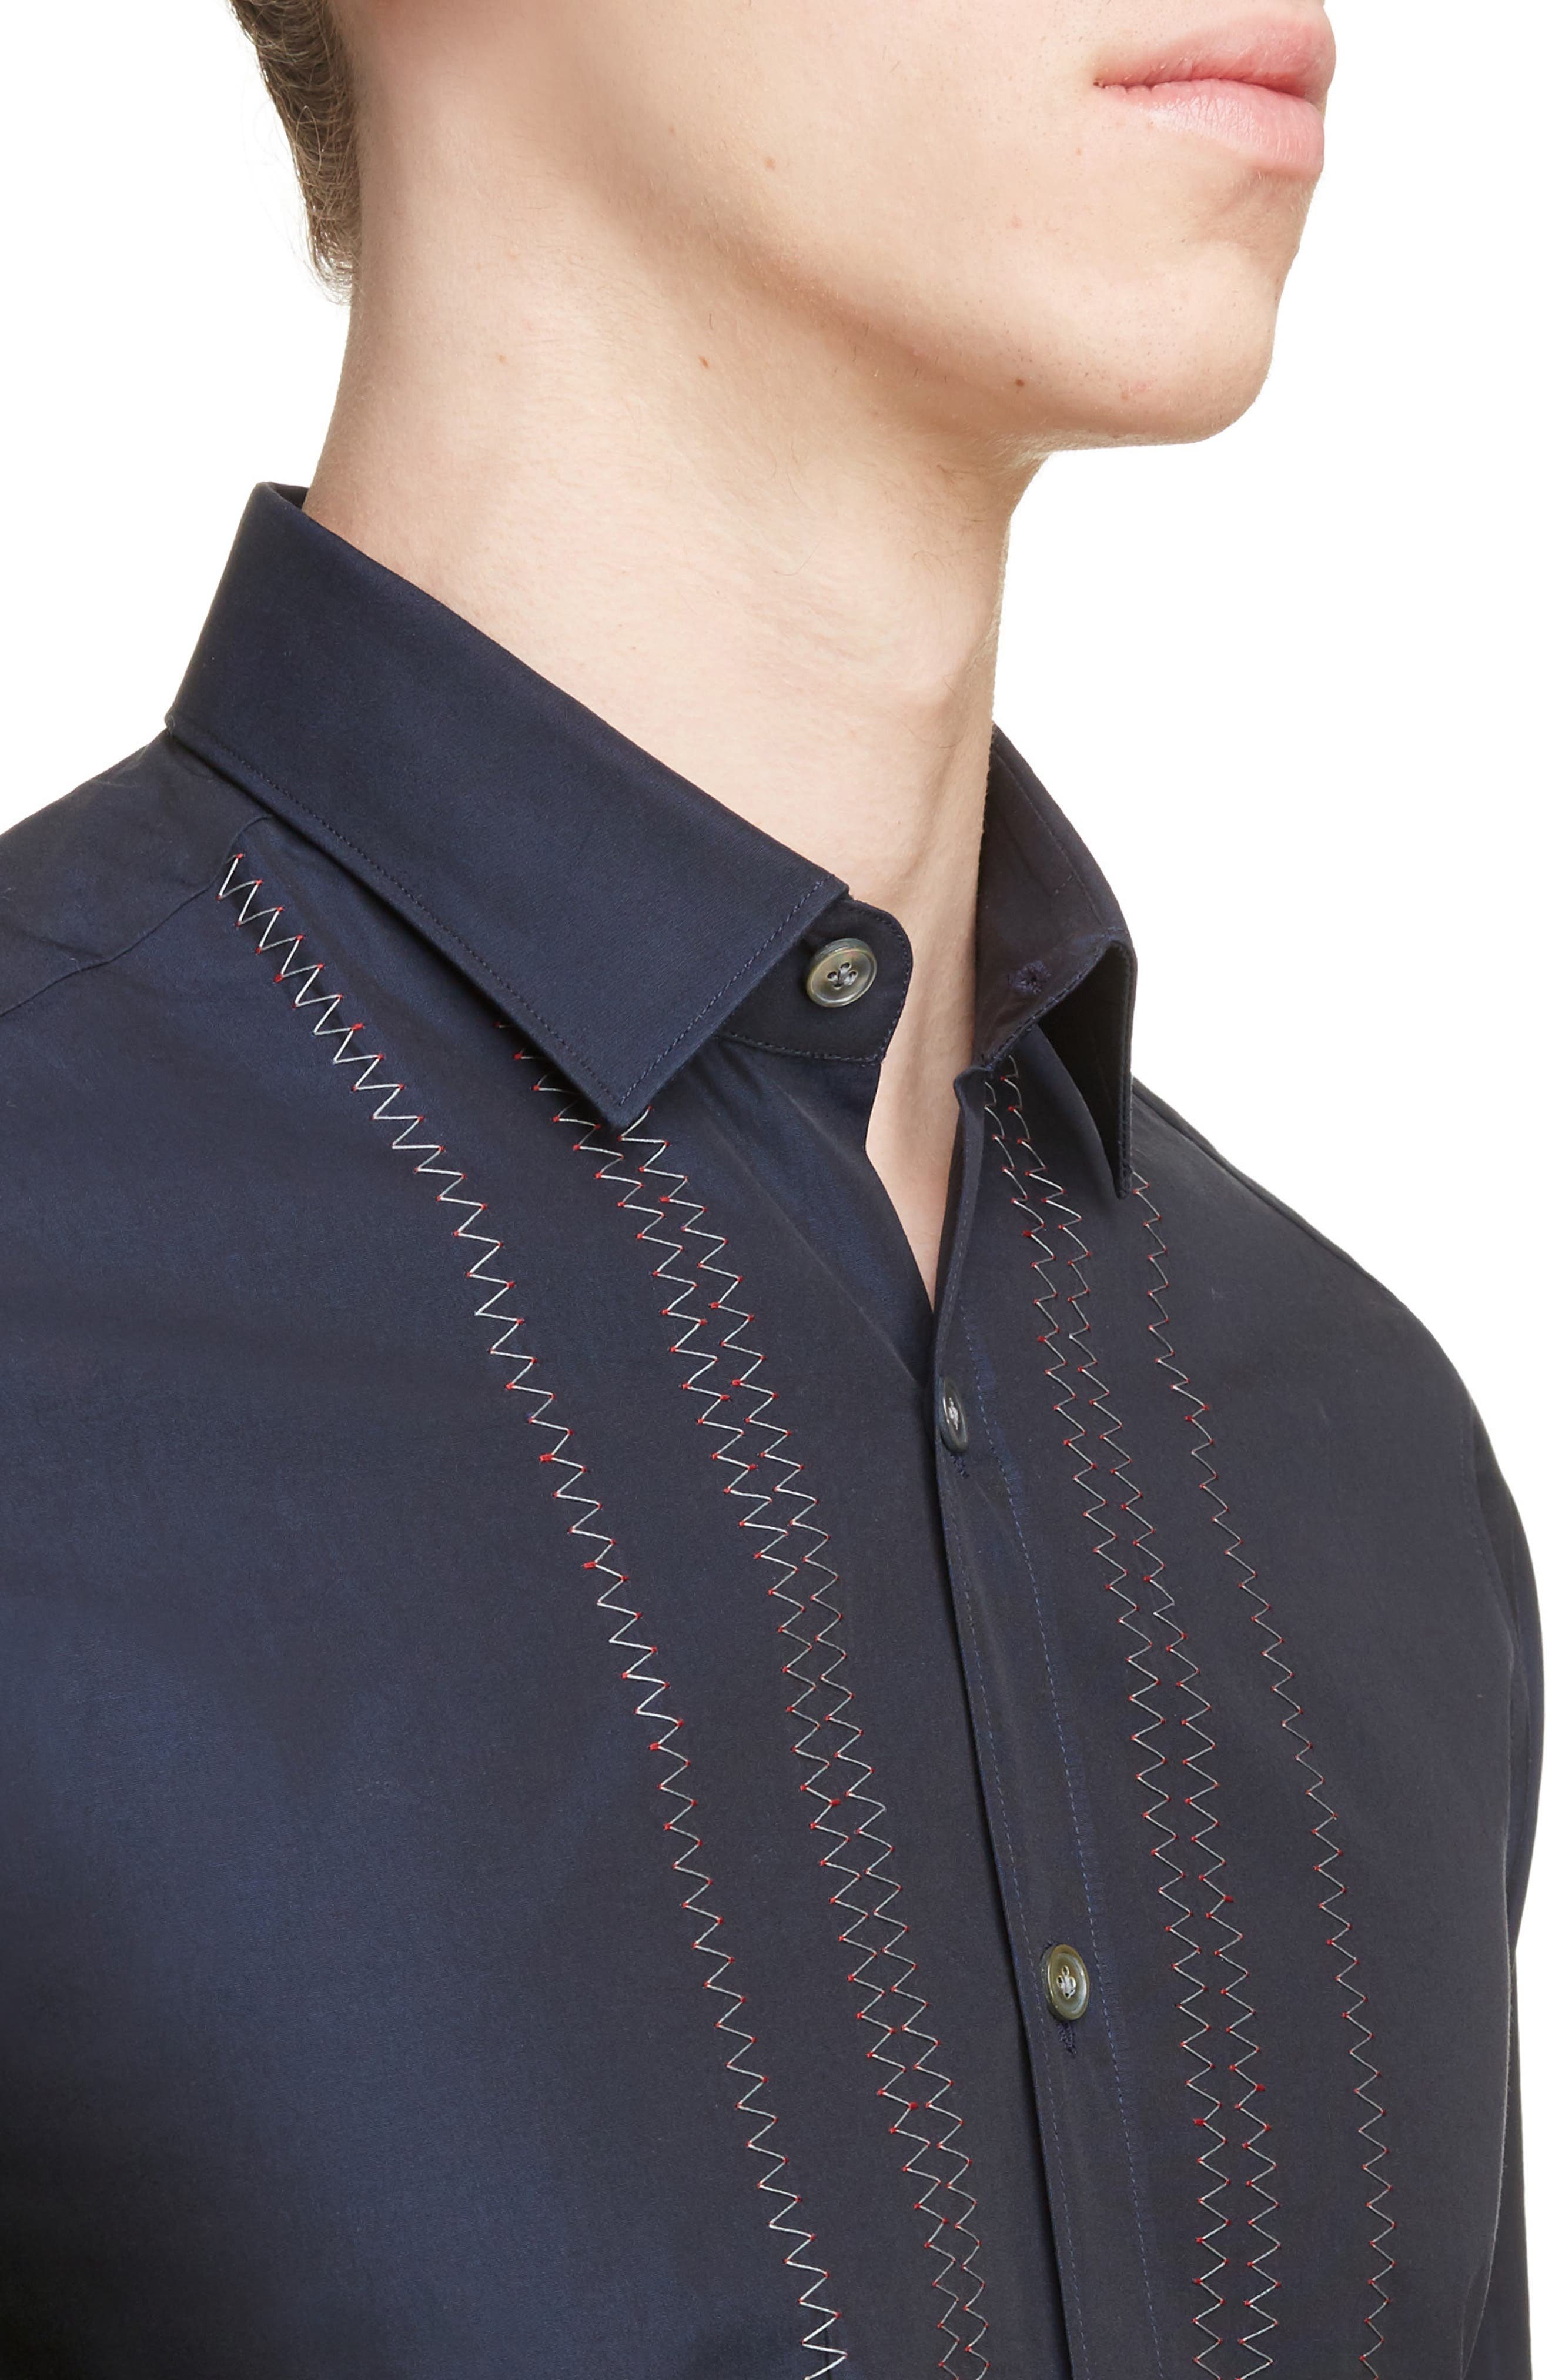 Zigzag Embroidered Cotton & Silk Sport Shirt,                             Alternate thumbnail 4, color,                             Navy